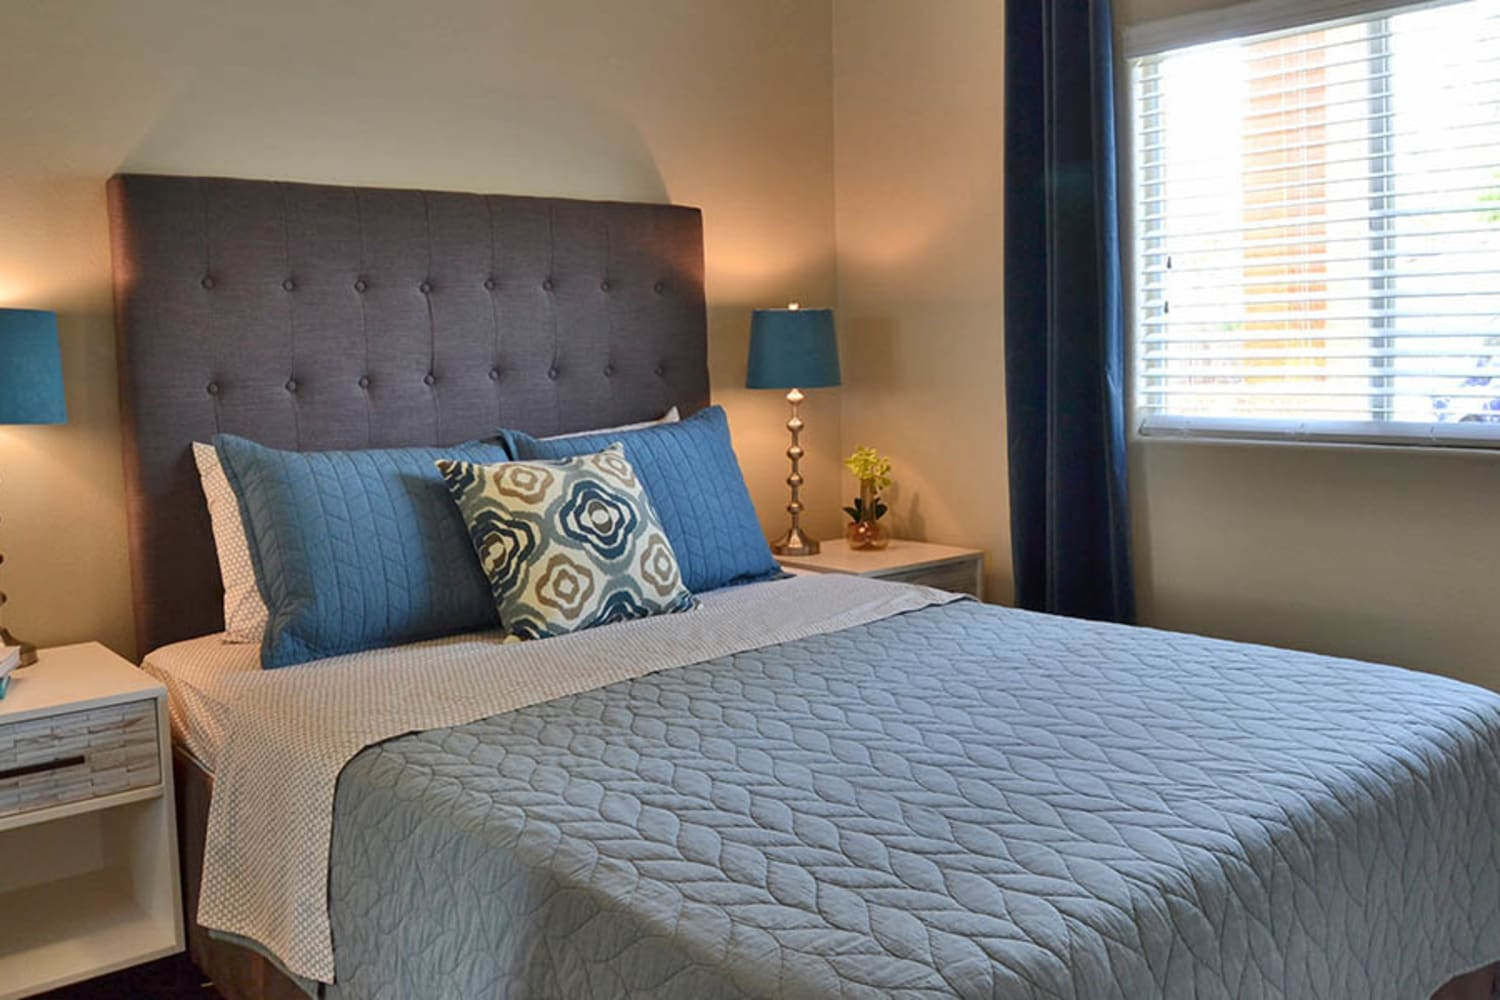 2150 Arizona Ave South in Chandler, Arizona offers comfortable bedrooms